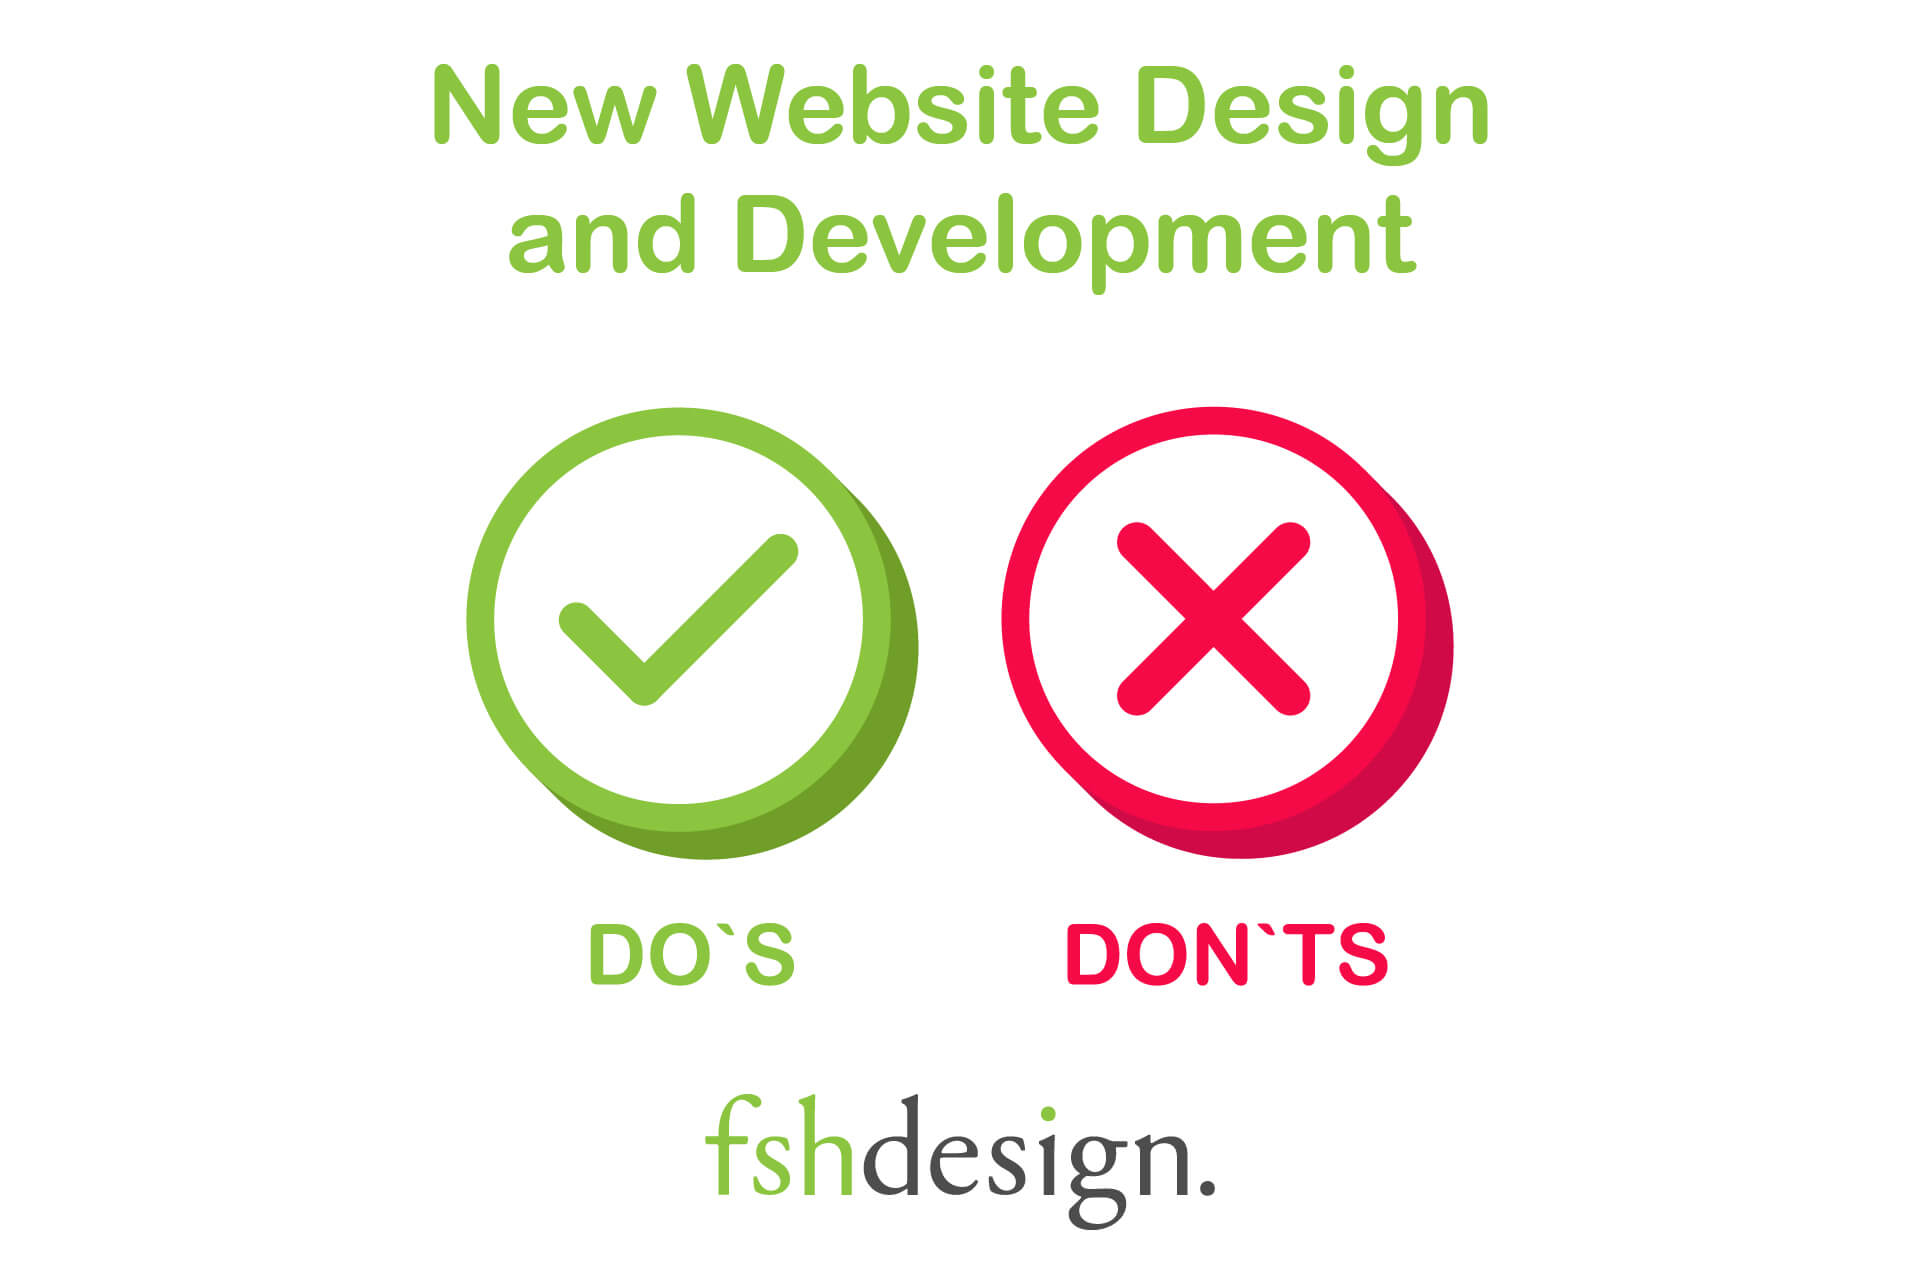 FSH Design Website Design Website Design Do's and Don'ts